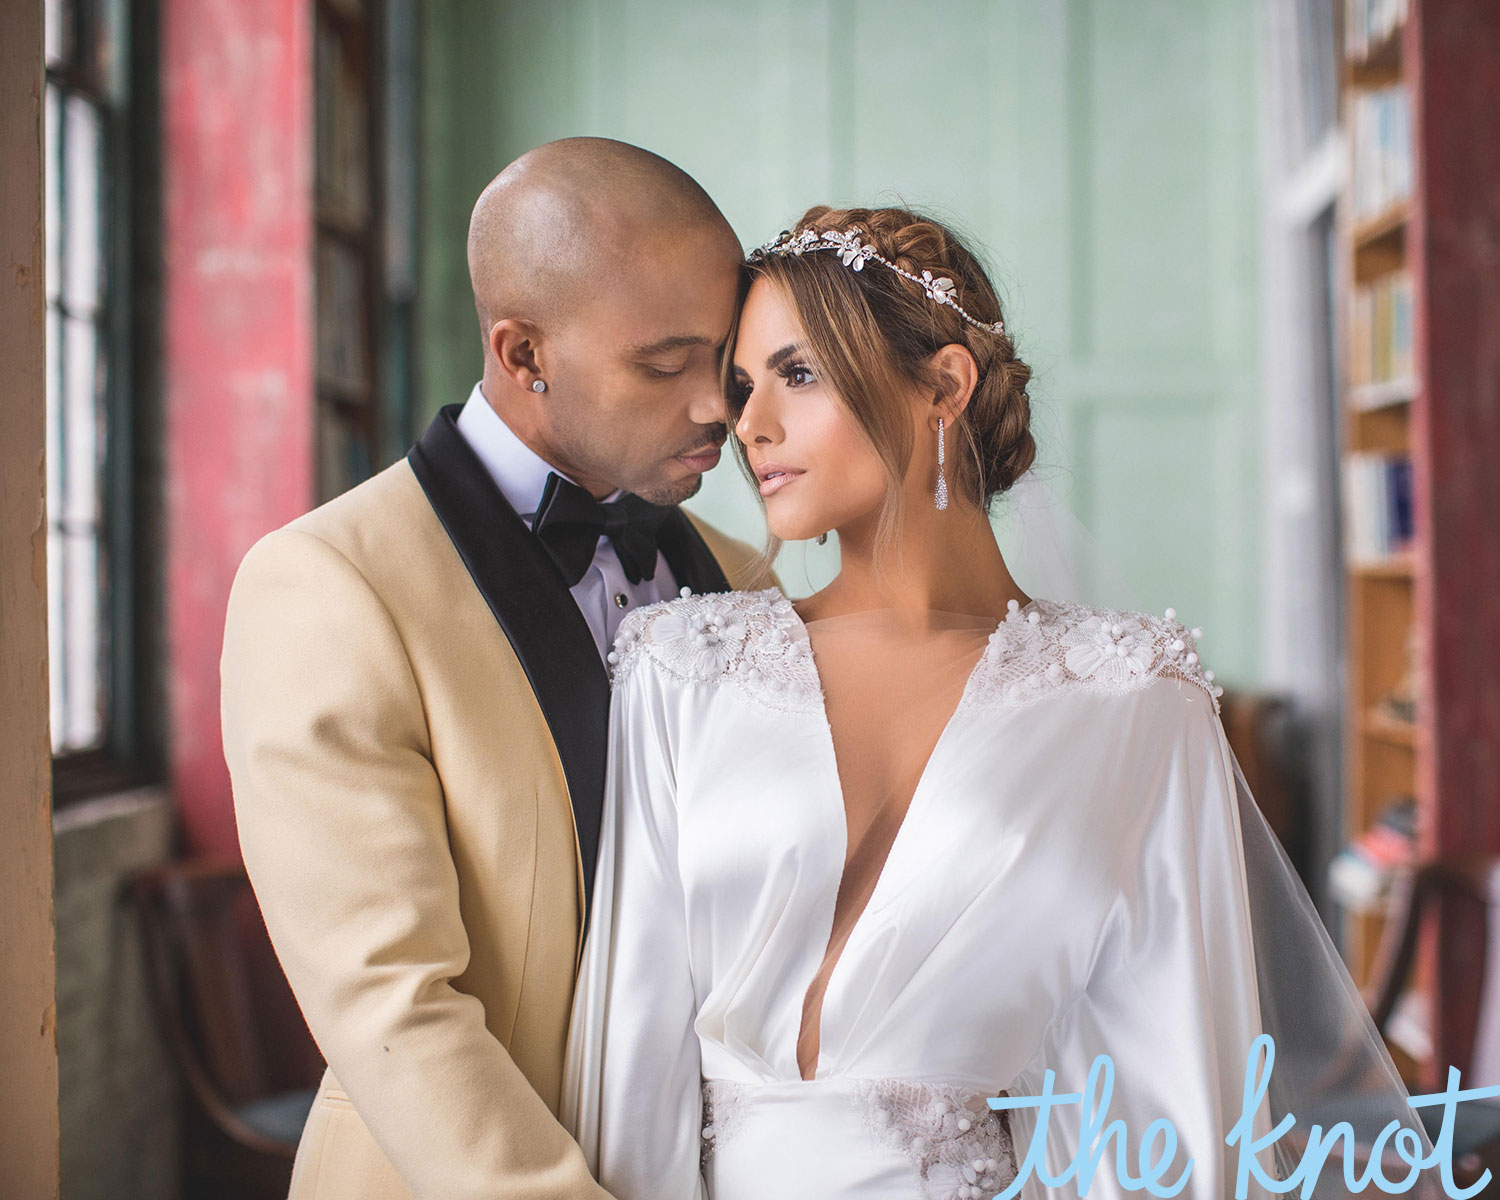 Pia Toscano Shares Her Wedding Album: Exclusive